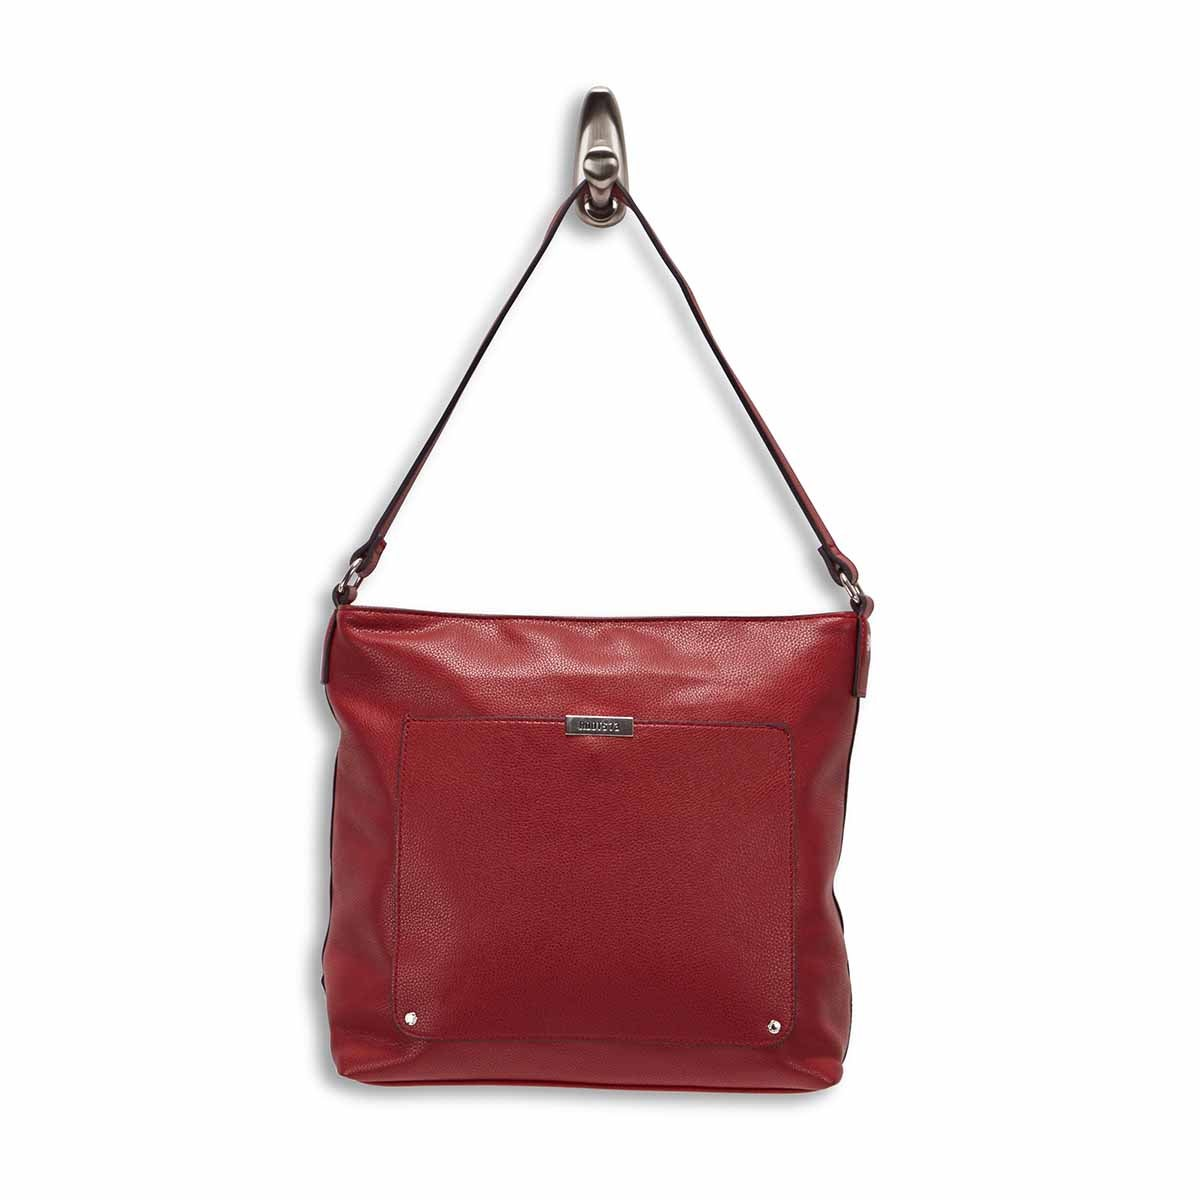 LdsRoots73 red square hobo bag